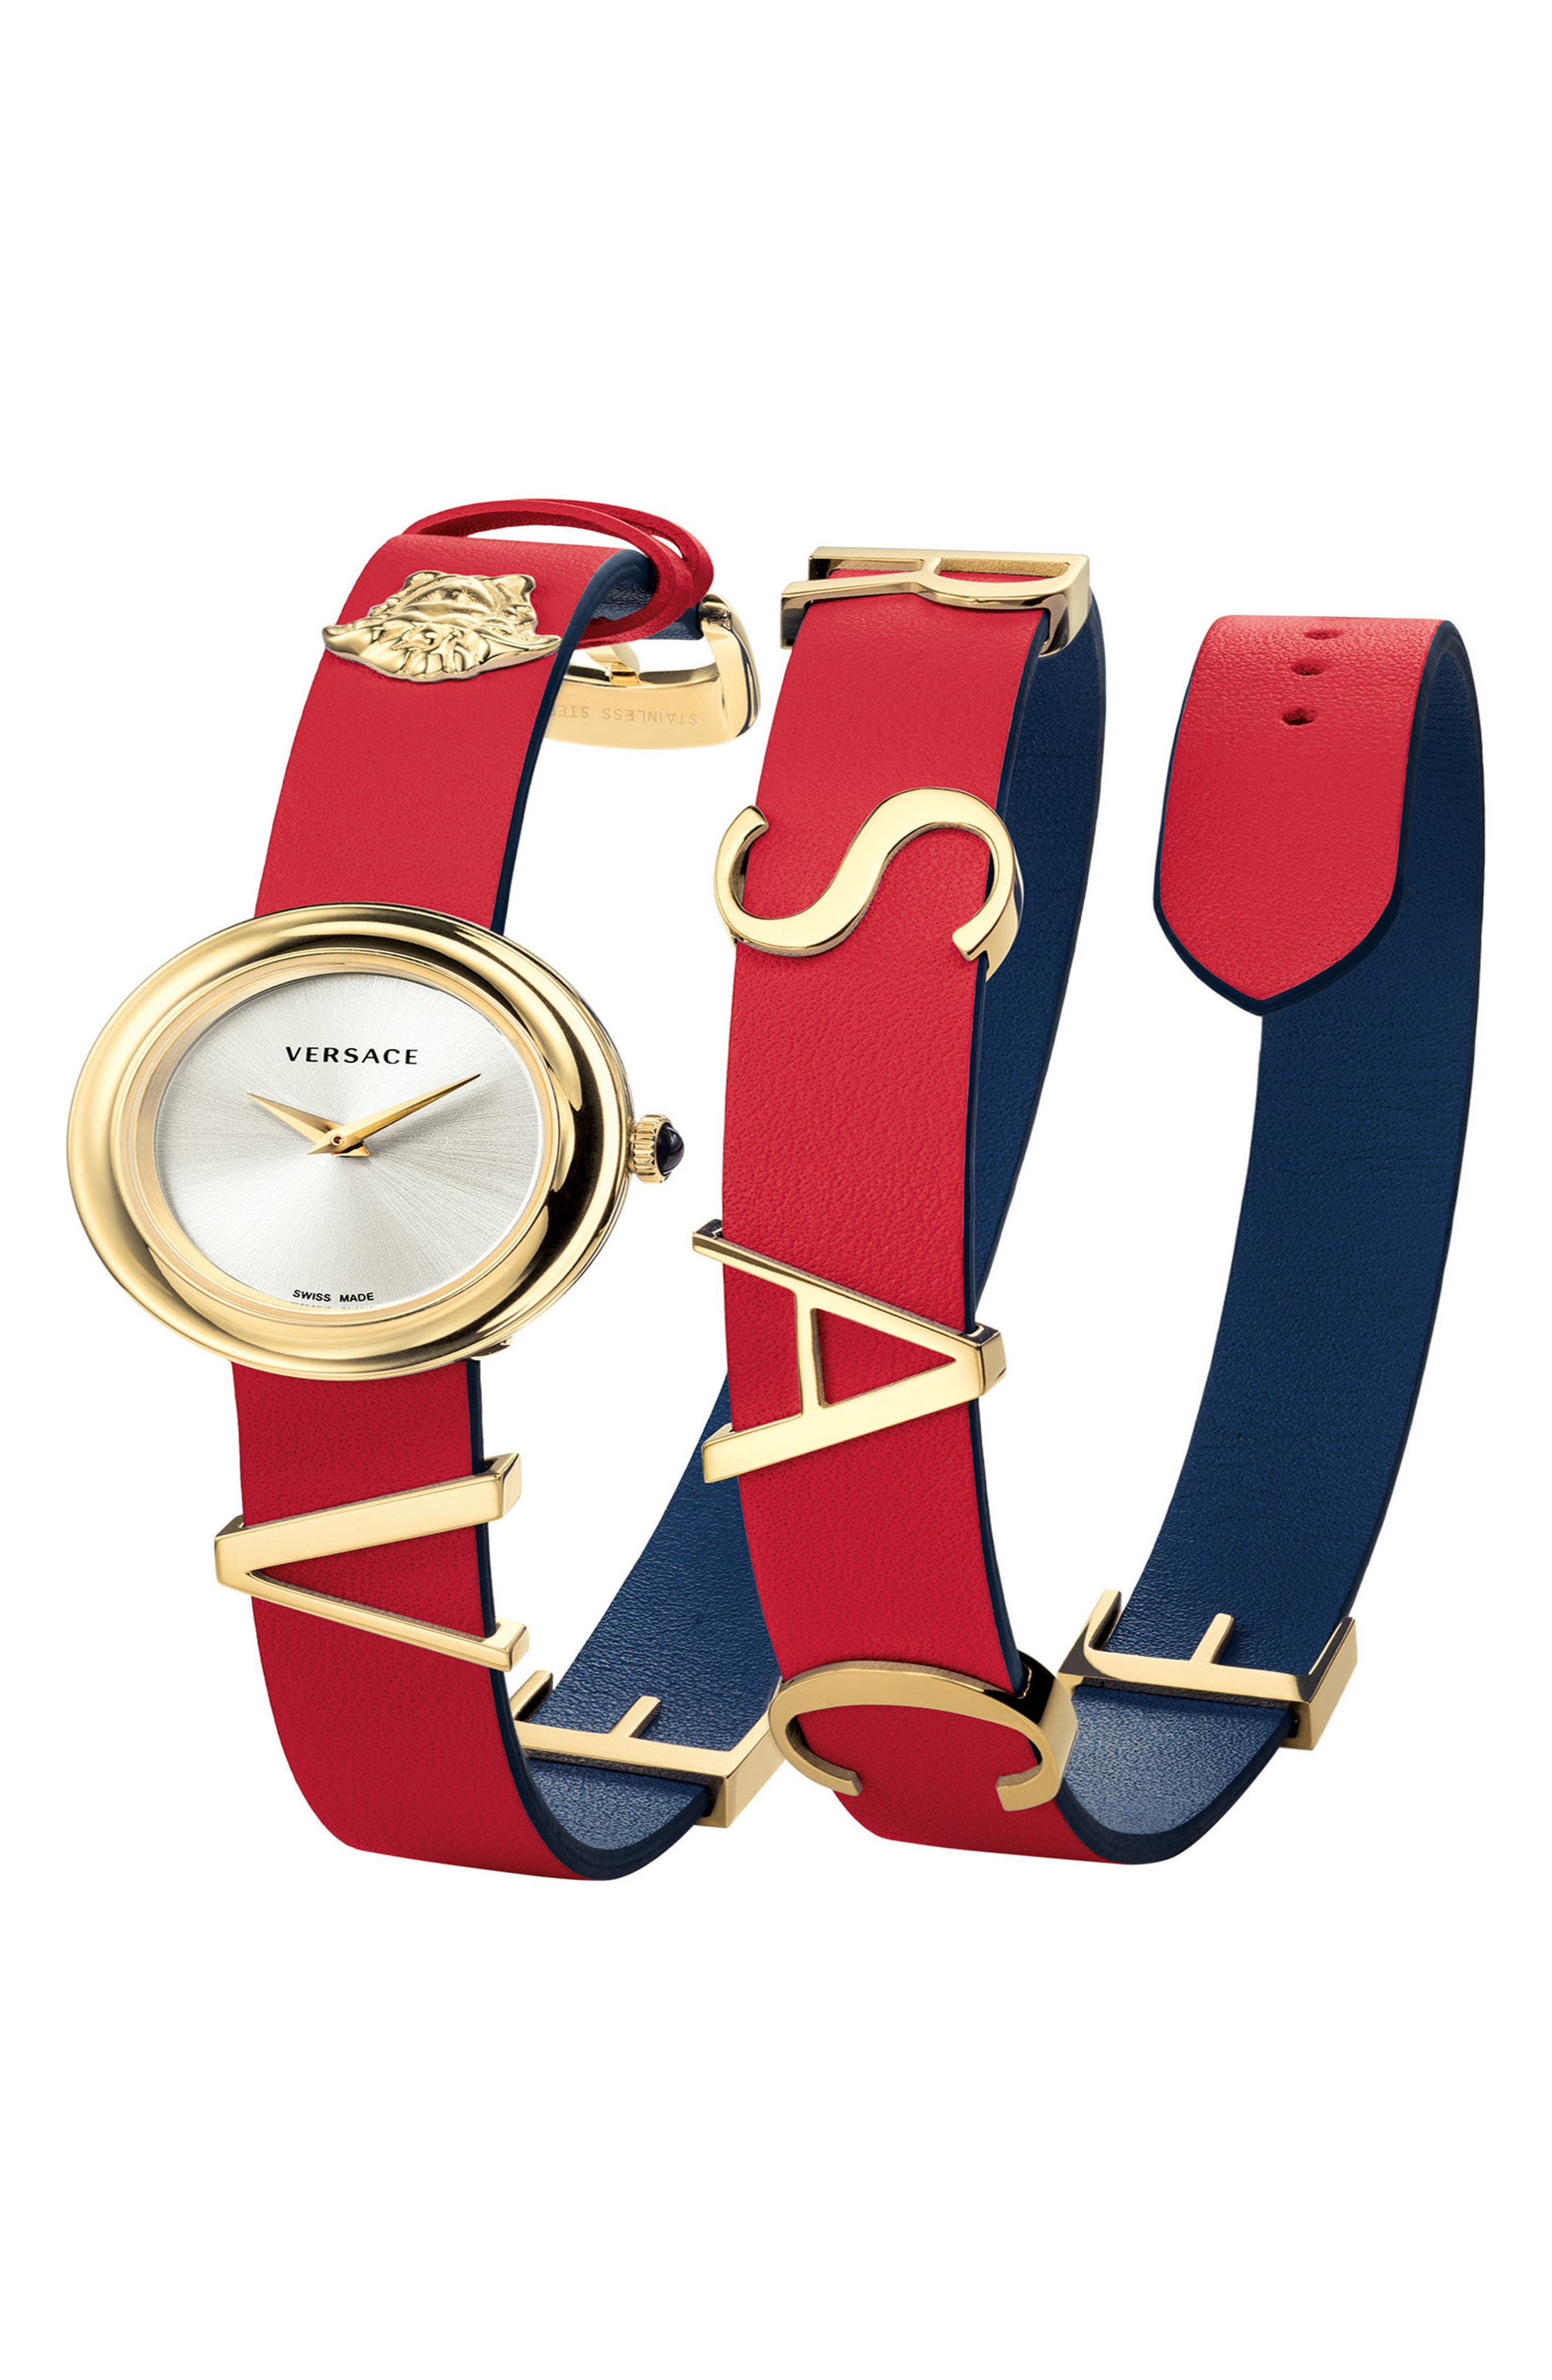 VERSACE, V-Flare Double Wrap Leather Strap Watch, 28mm, Main thumbnail 1, color, RED/ SILVER/ GOLD